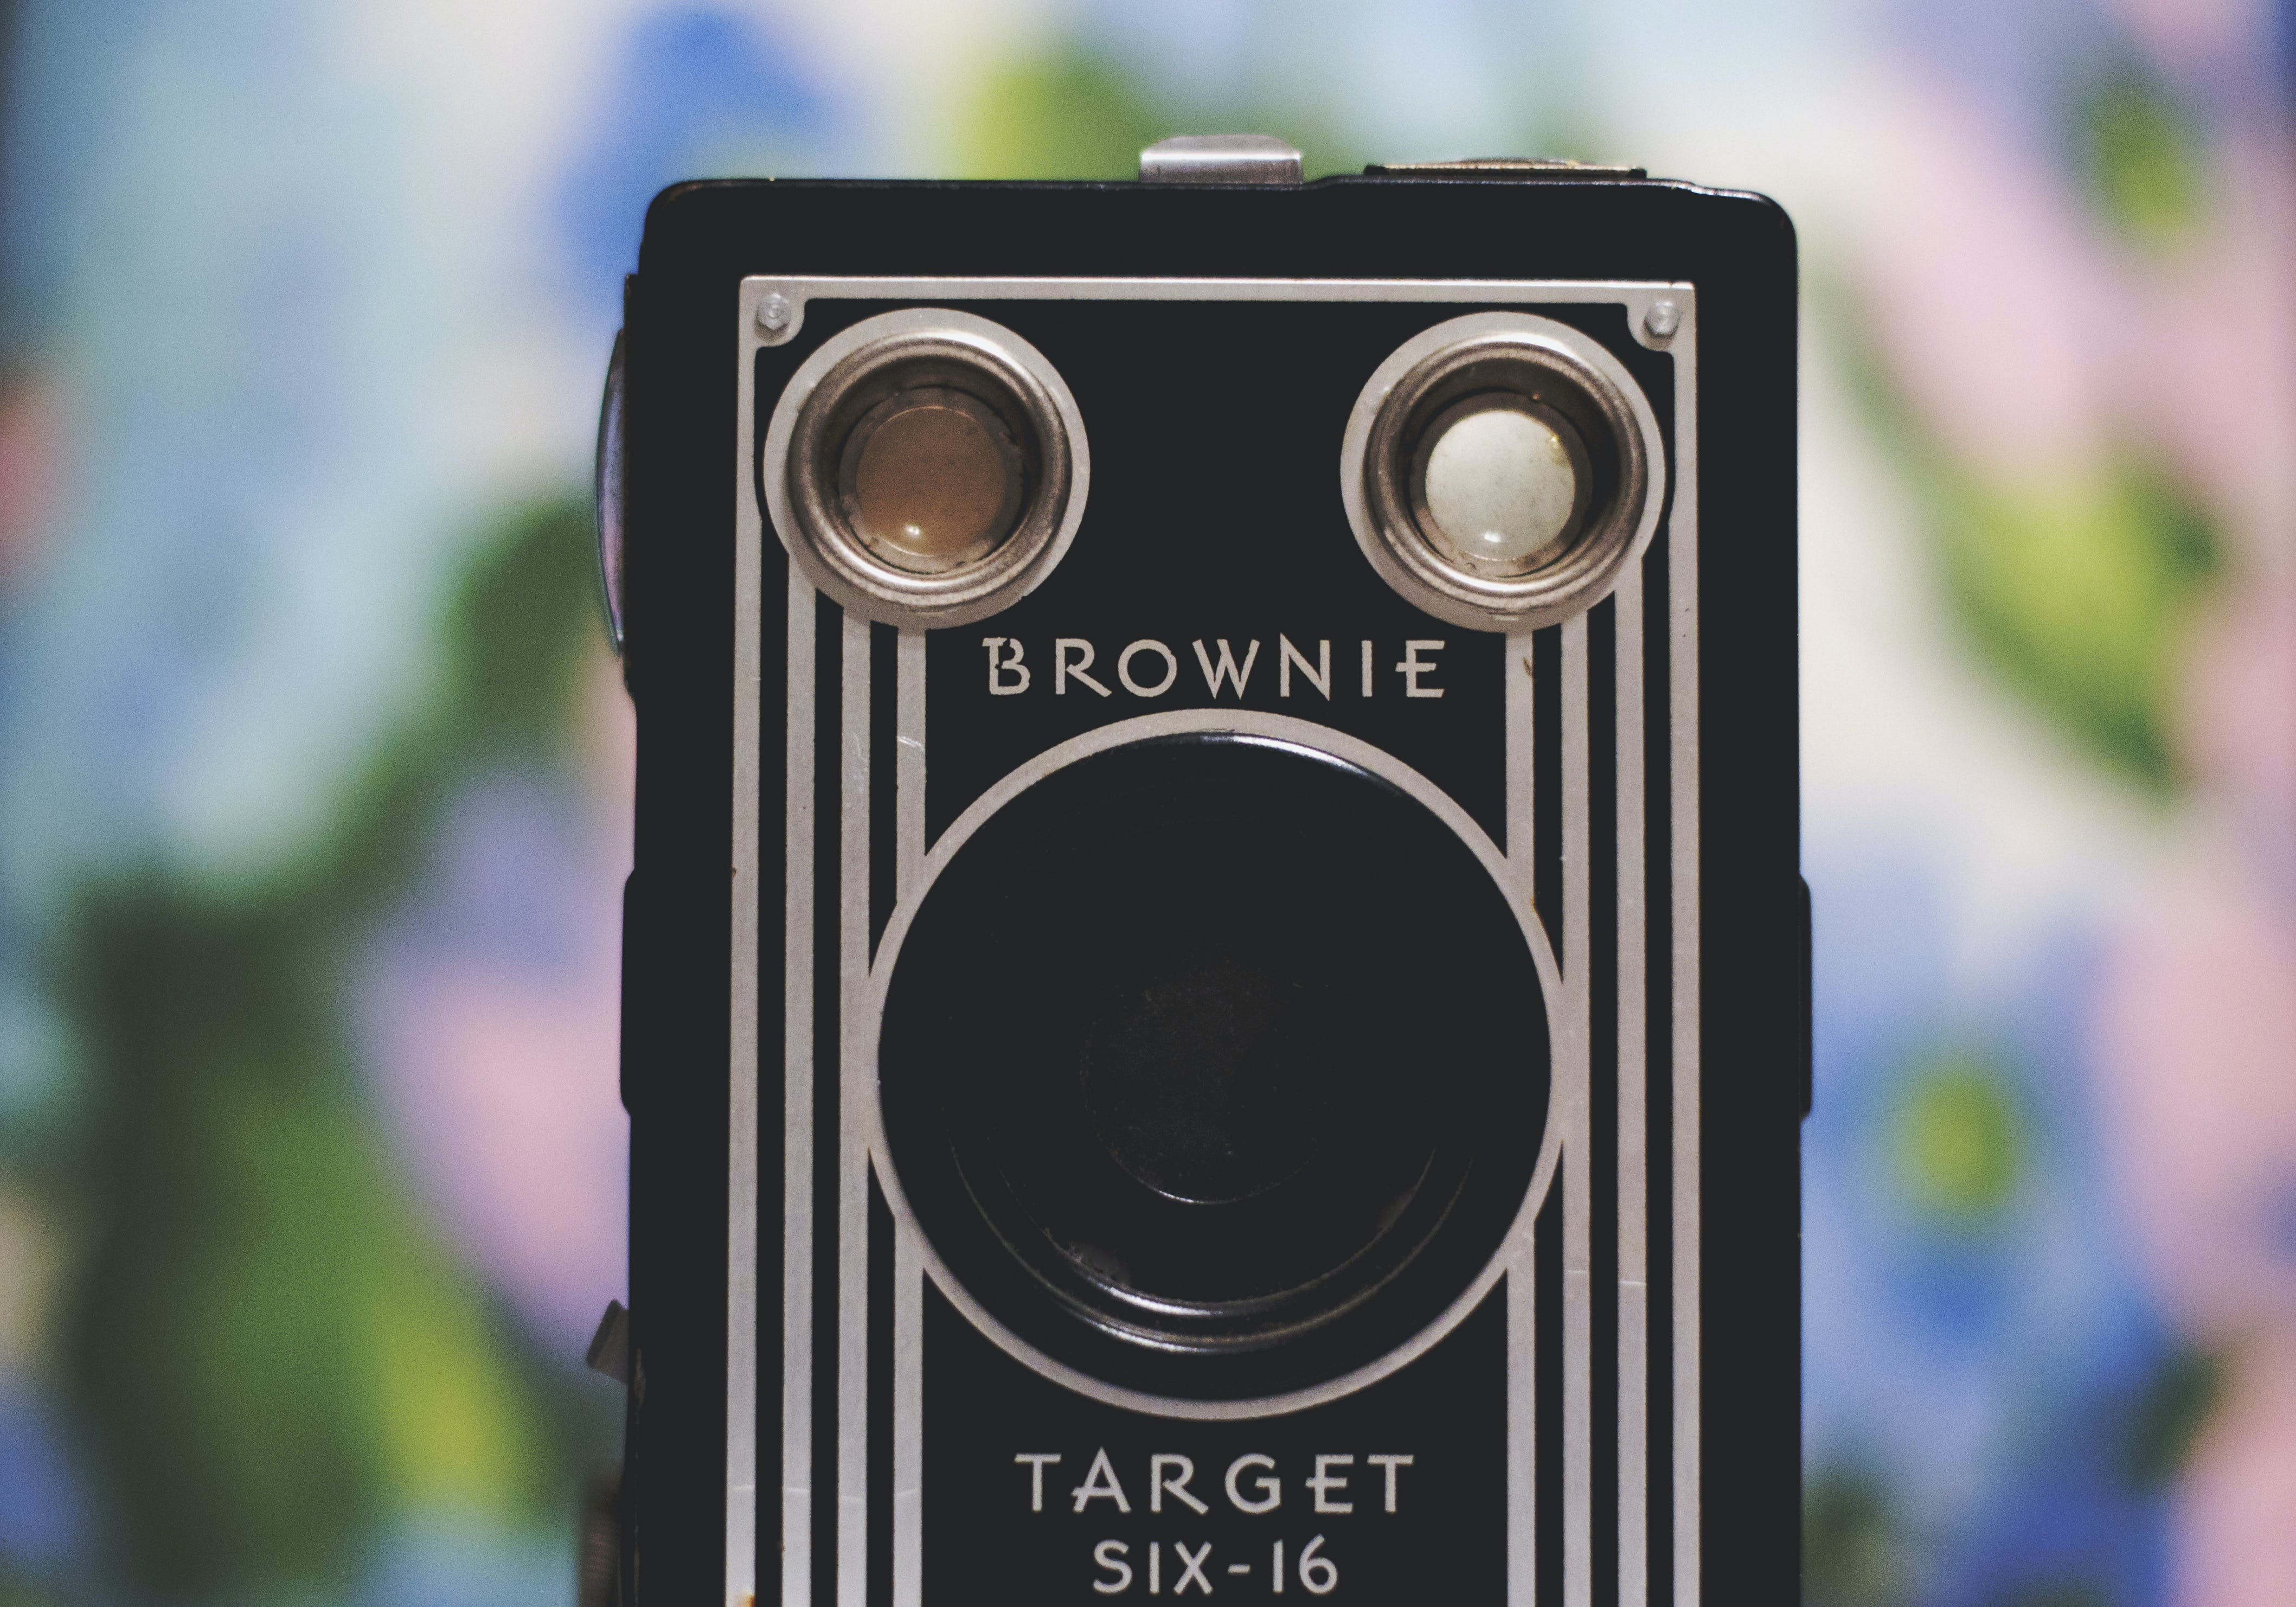 Tilt Shift Lens Photography of Black and White Brownie Camera